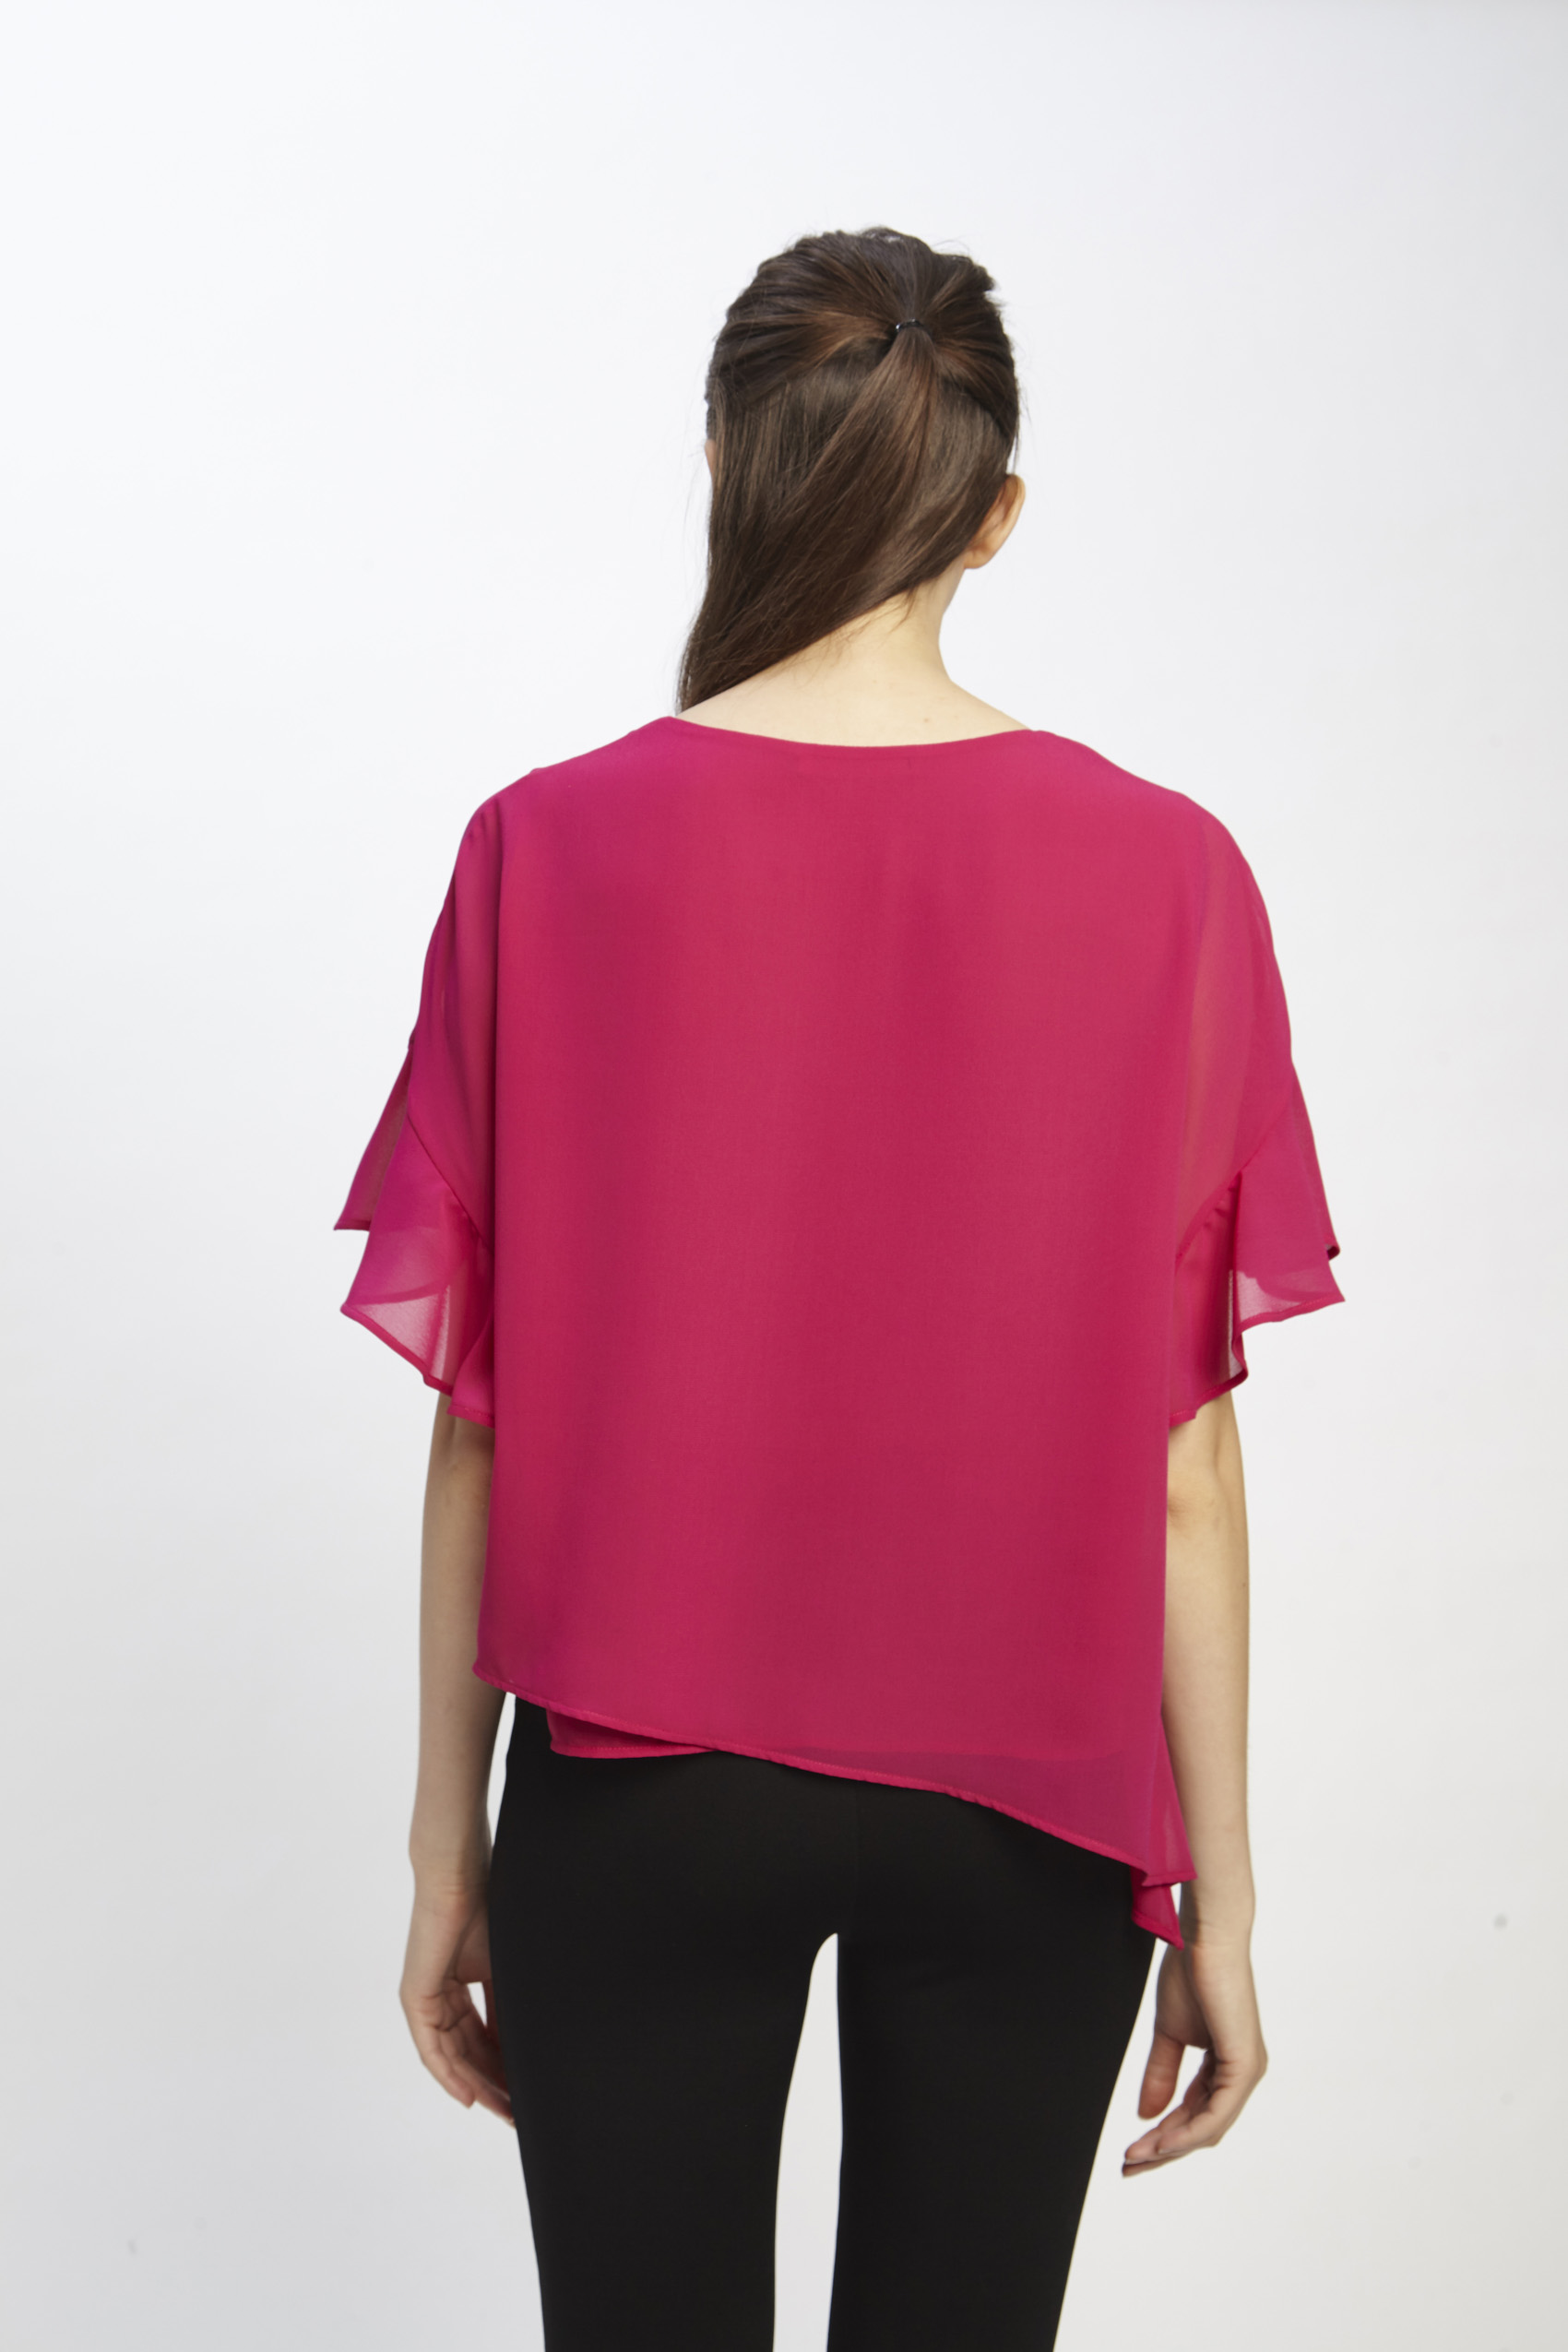 awada_blusa-candy_32-25-2019__picture-1887